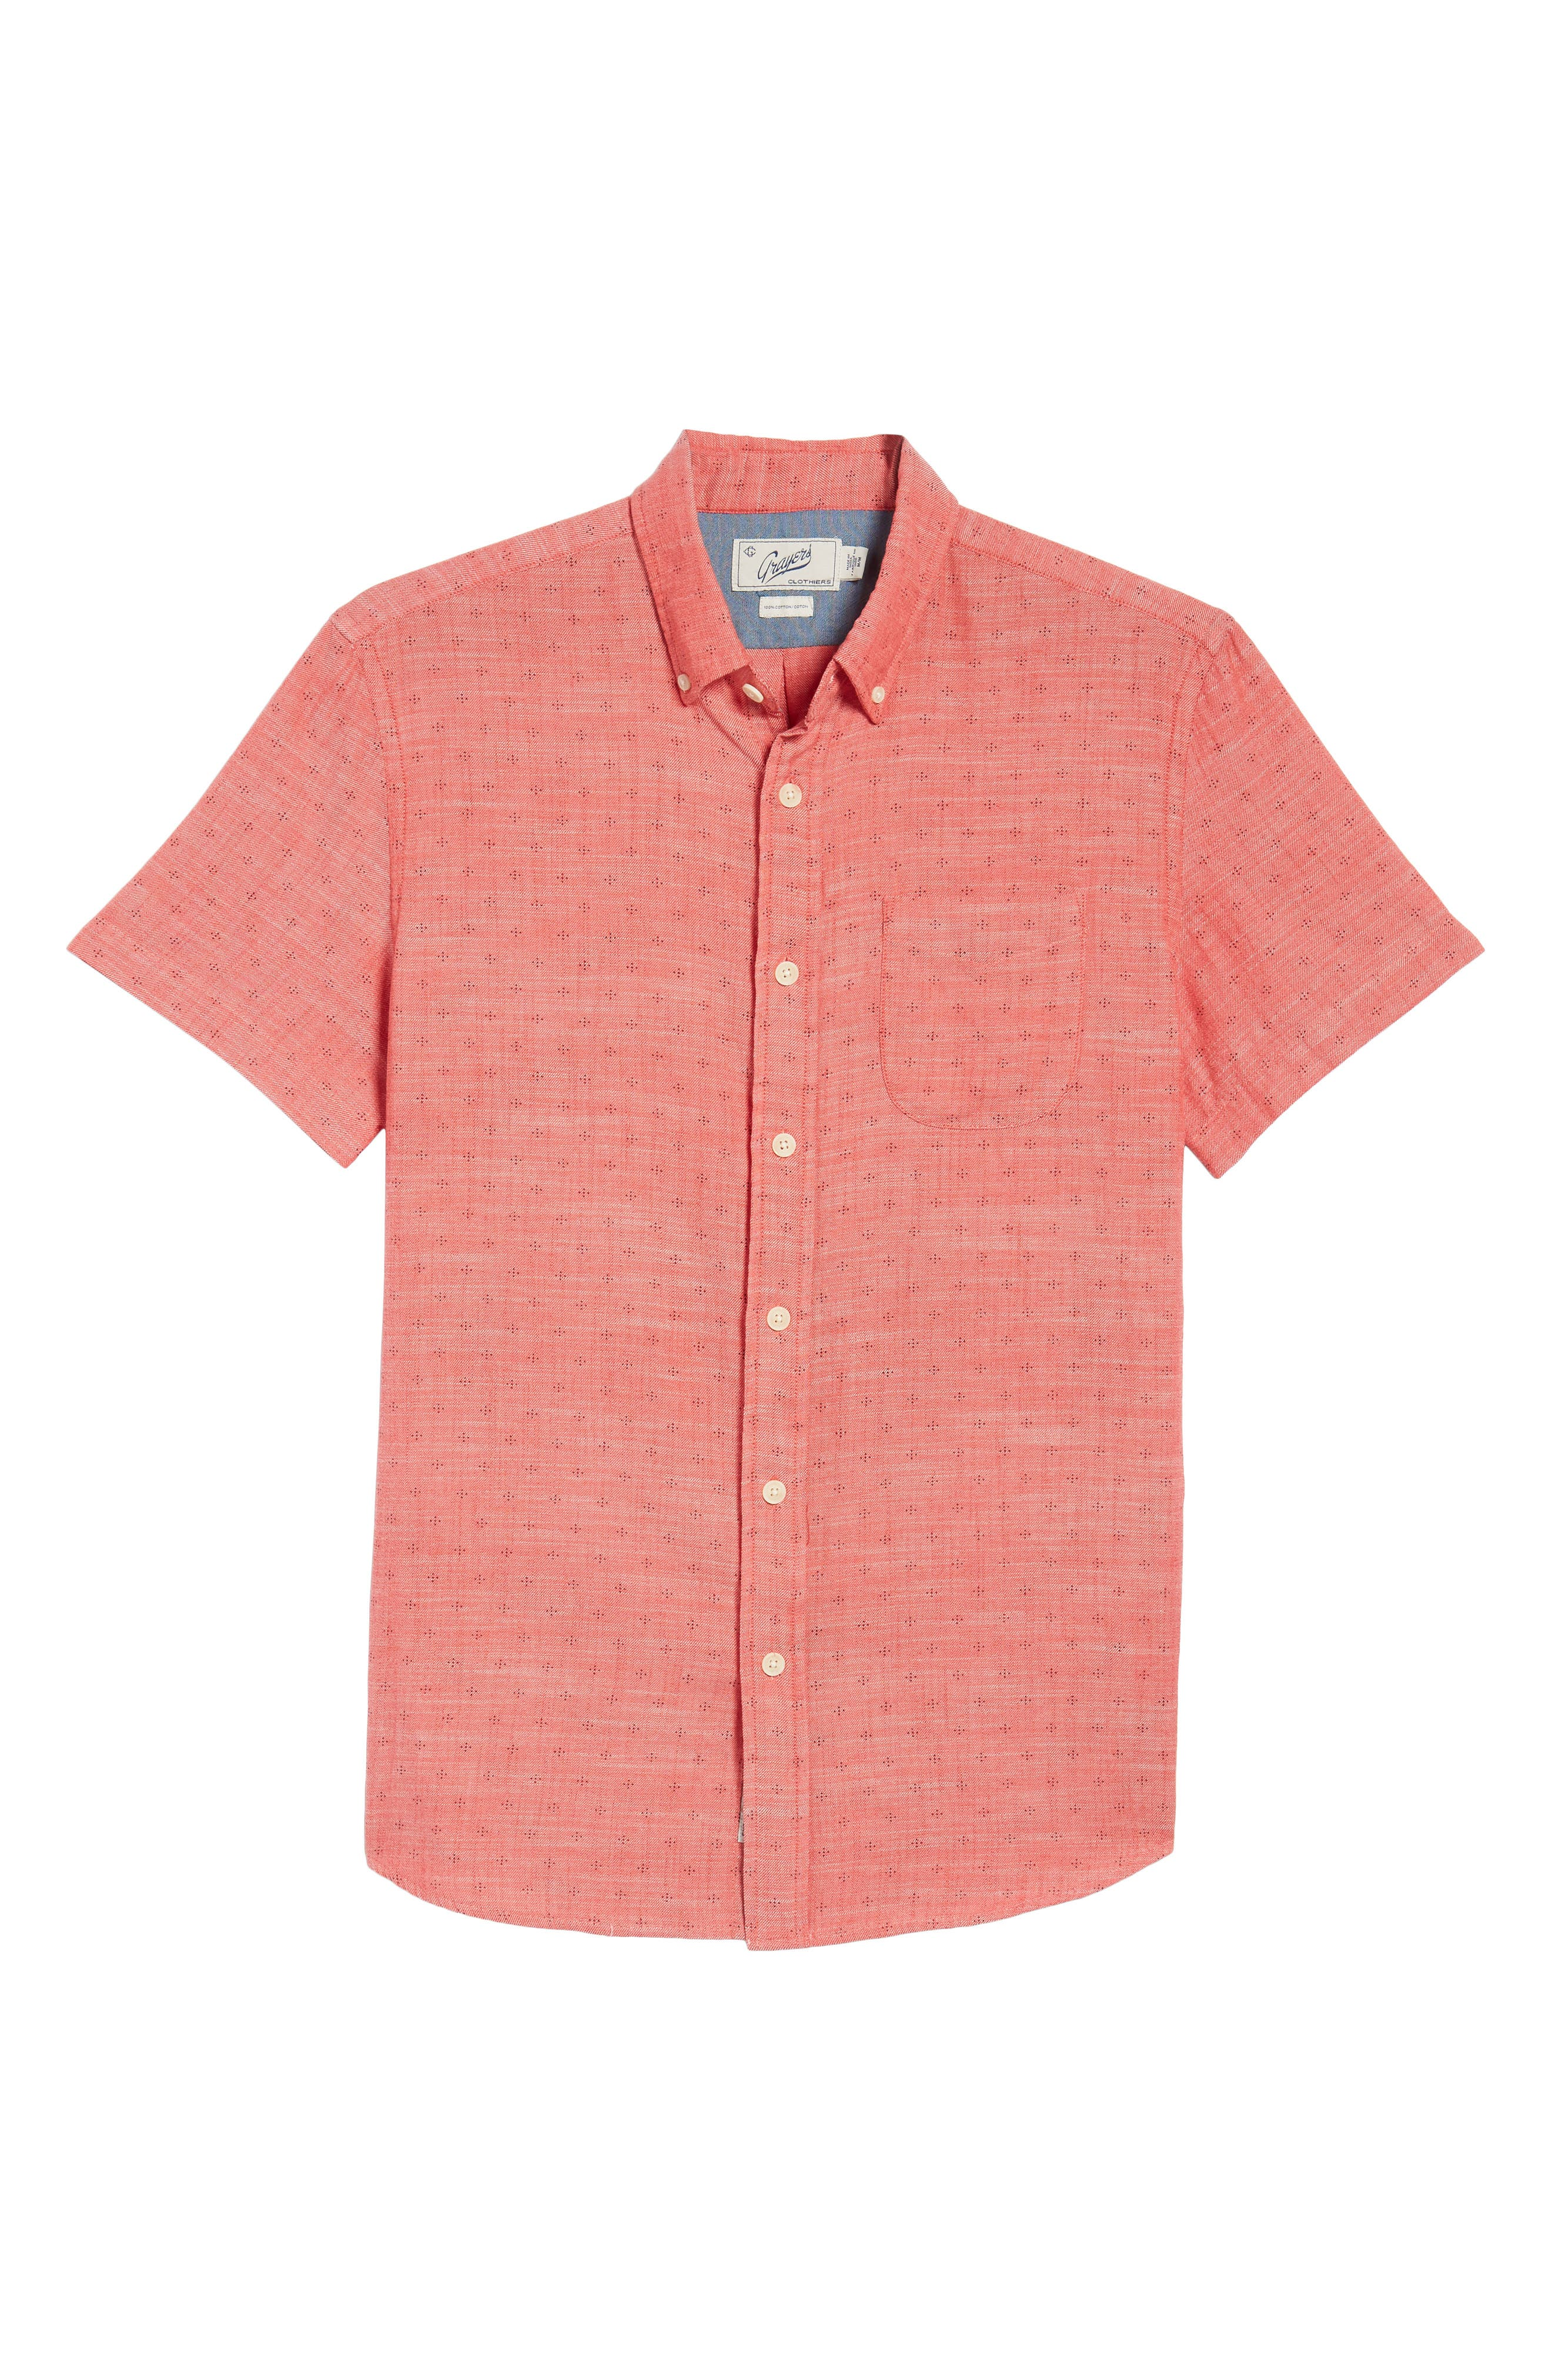 Pearson Print Short Sleeve Sport Shirt,                             Alternate thumbnail 6, color,                             Red Twill